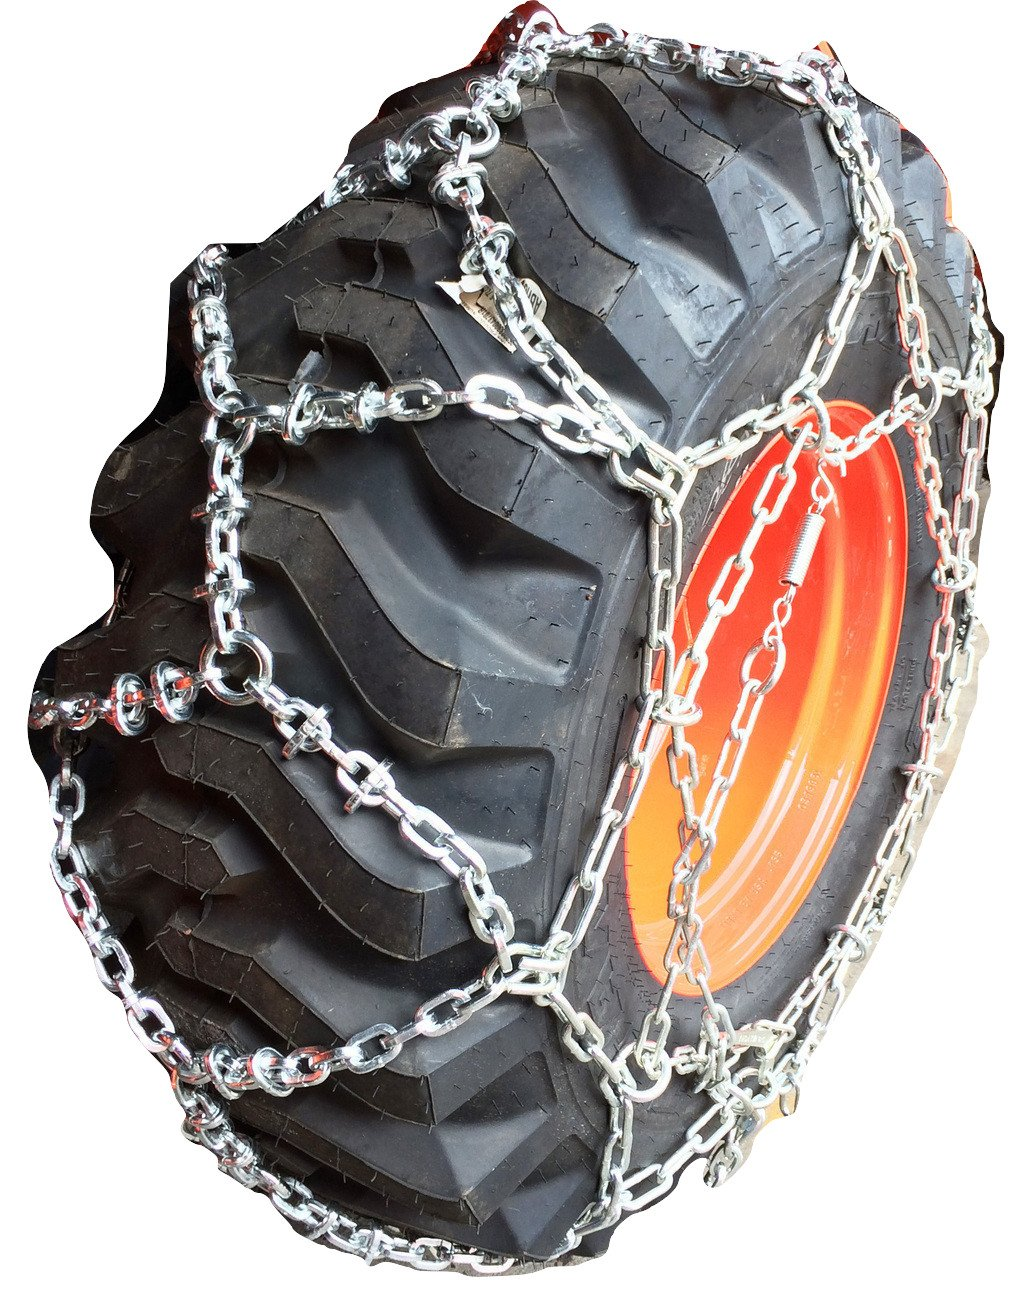 TireChain.com 15-19.5 Reinforced European Style Net Tire Chains, Priced per Pair (Set of 2)